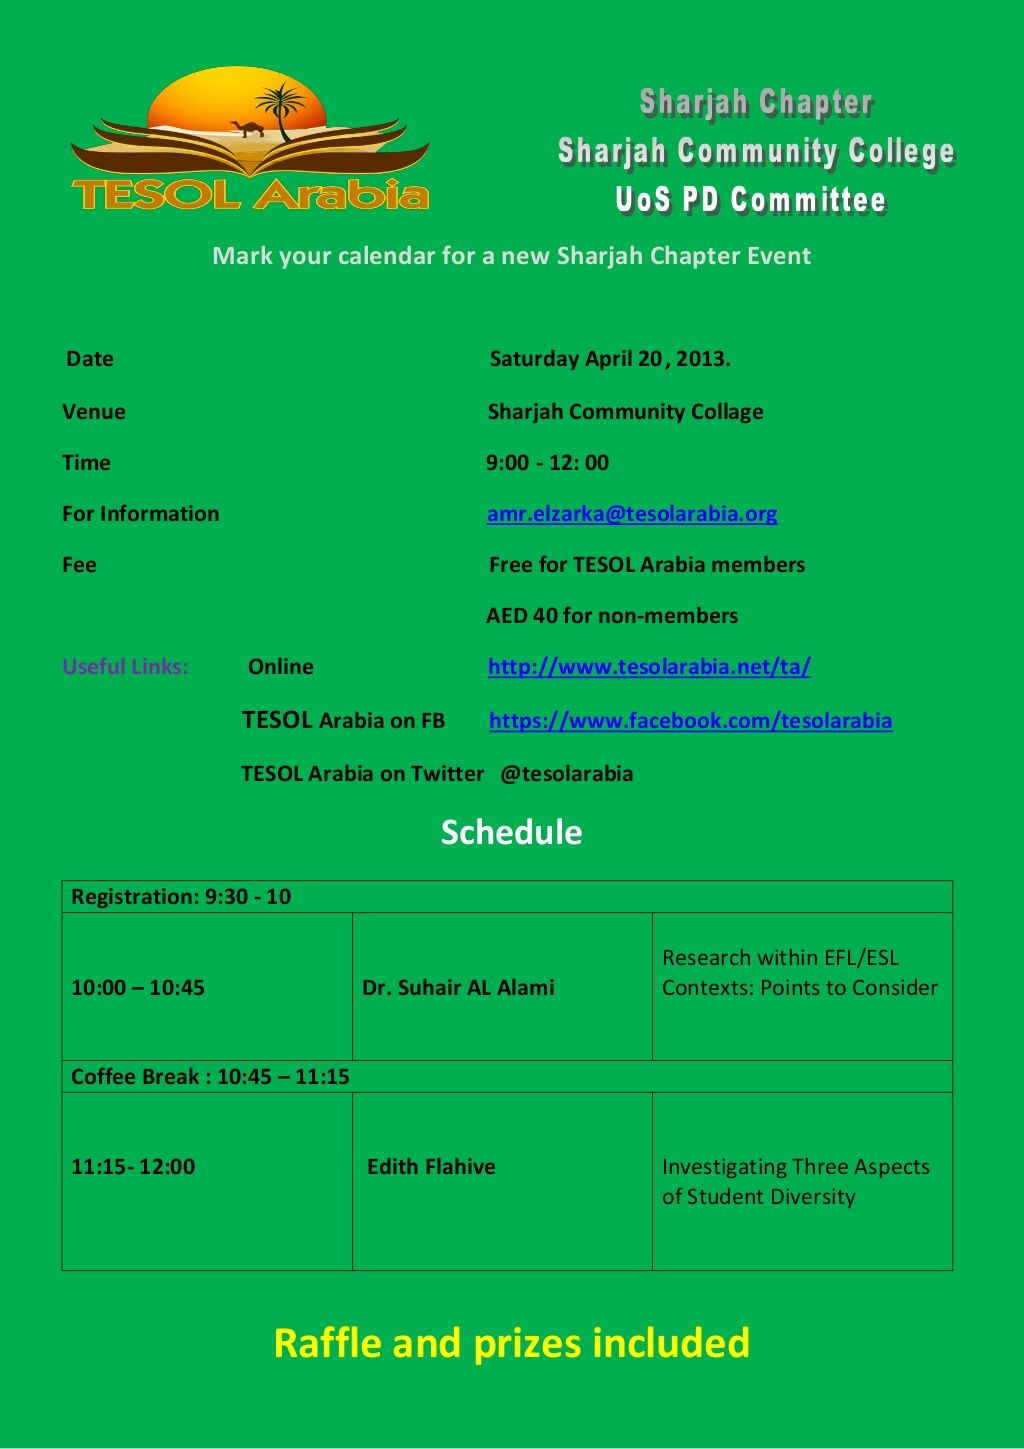 TESOL Arabia Sharjah Chapter Event April 20th 9am at The University of Sharjah Community College Campus